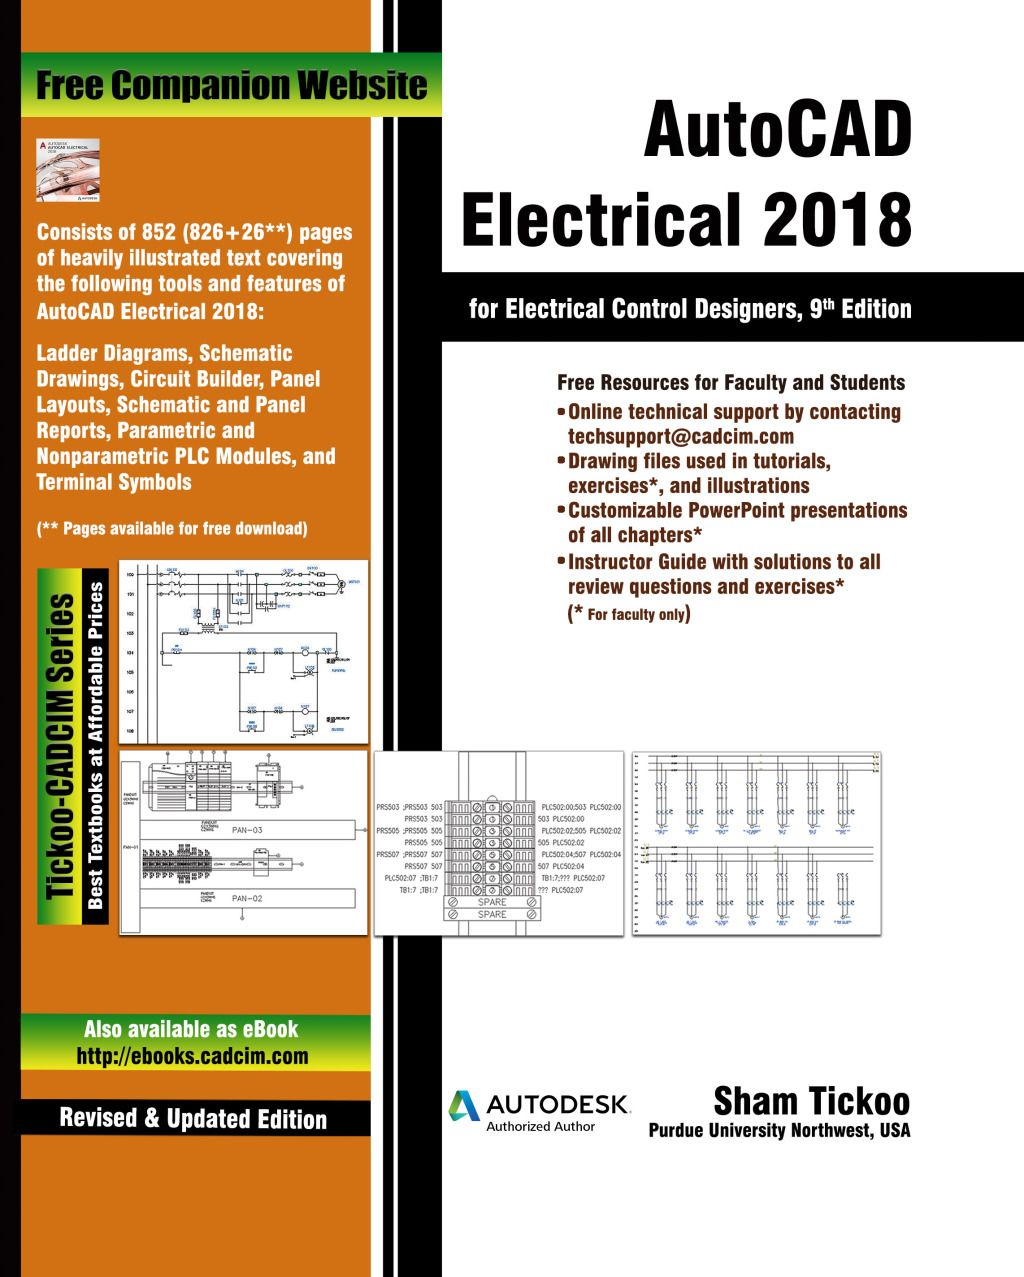 Autocad Electrical 2018 For Electrical Control Designers 9th